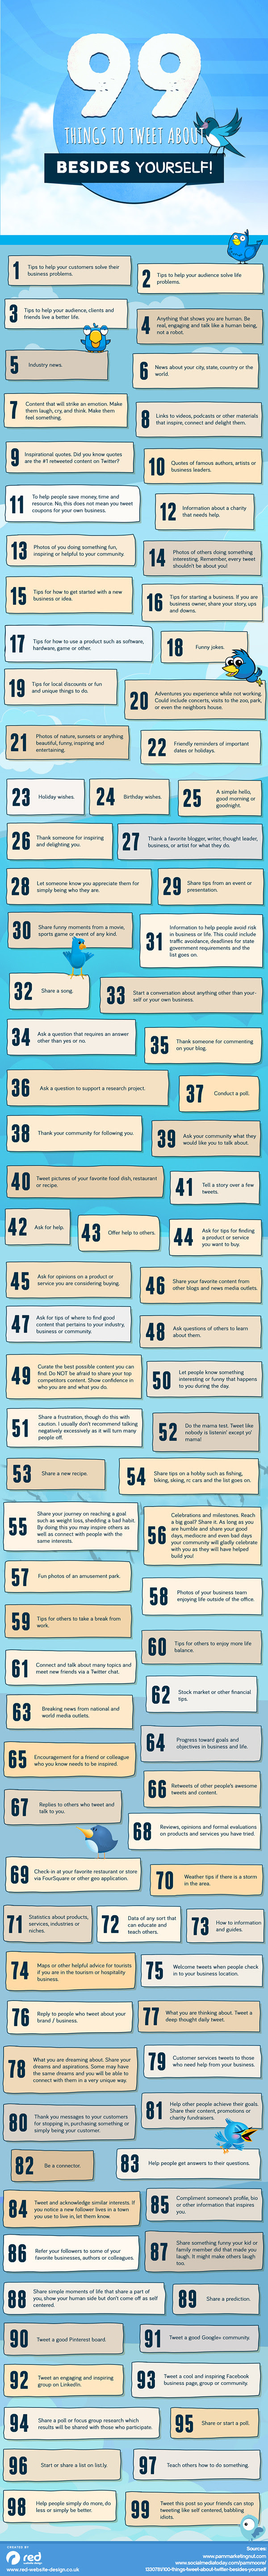 Infographic: 99 Things to Tweet About Besides Yourself